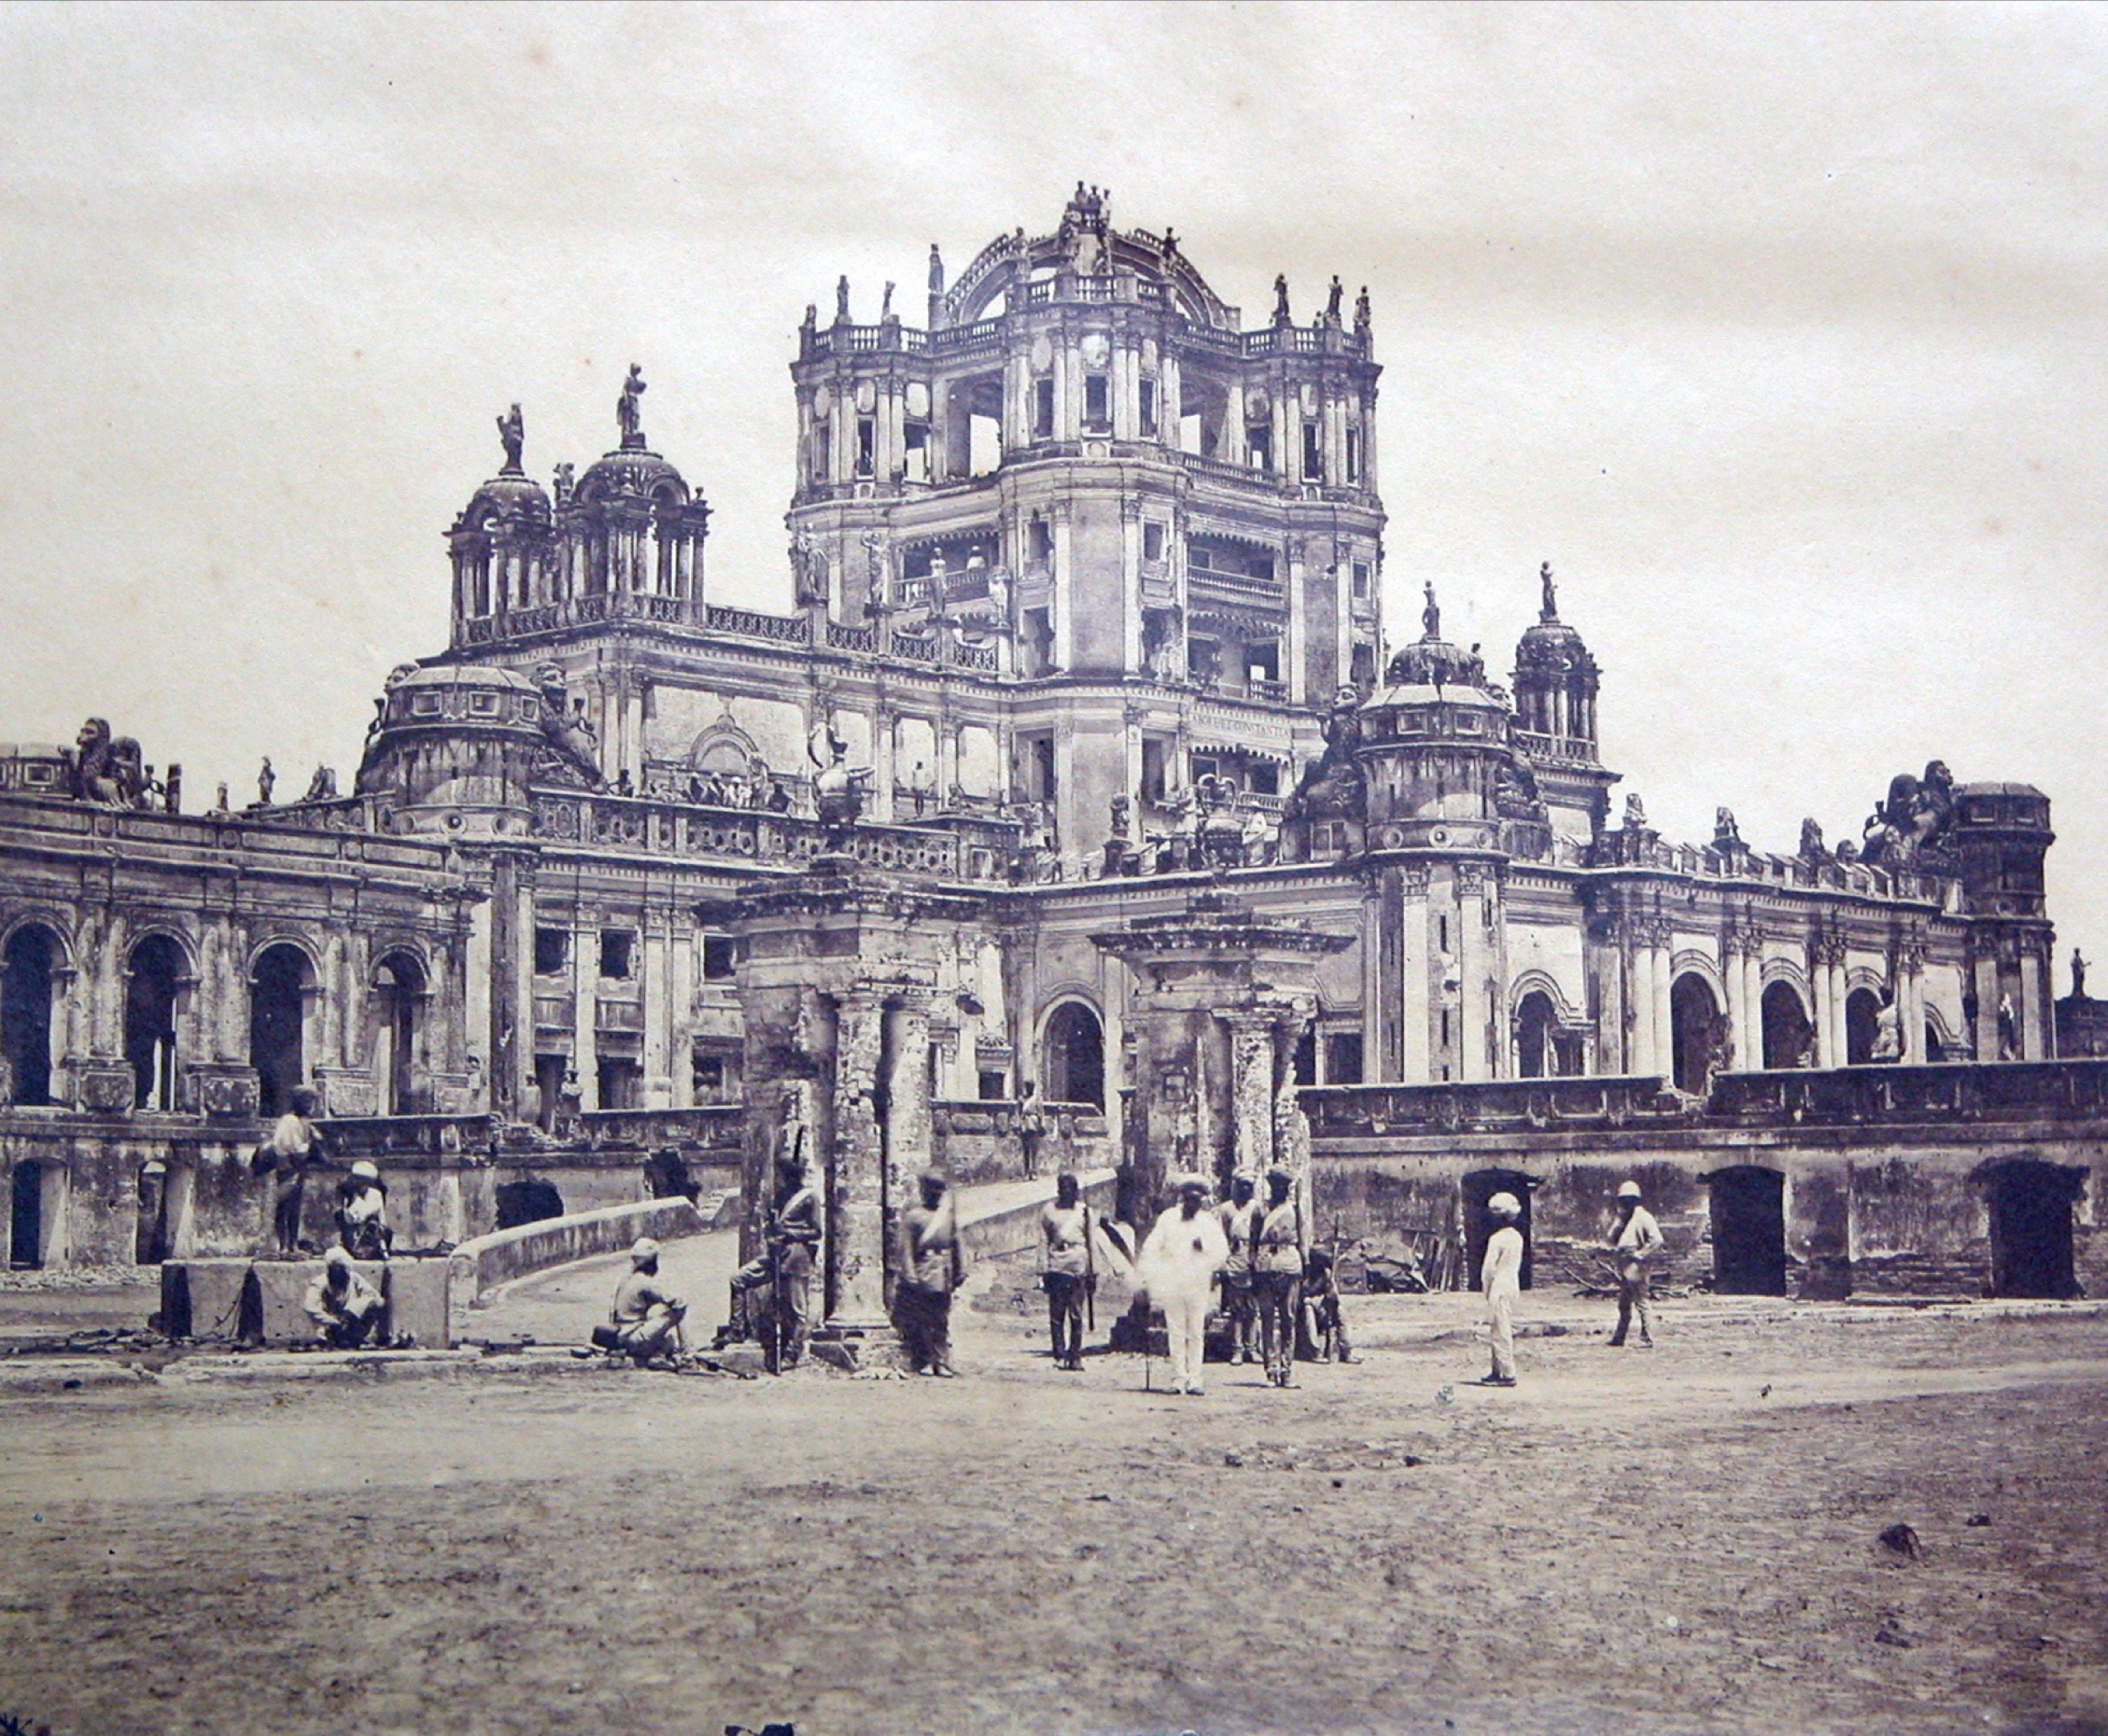 Image by Felice Beato in 1858 of La Martiniere Lucknow  |  Street by Street, building by building, Indian soldiers fought for Lucknow. |  Click for image.